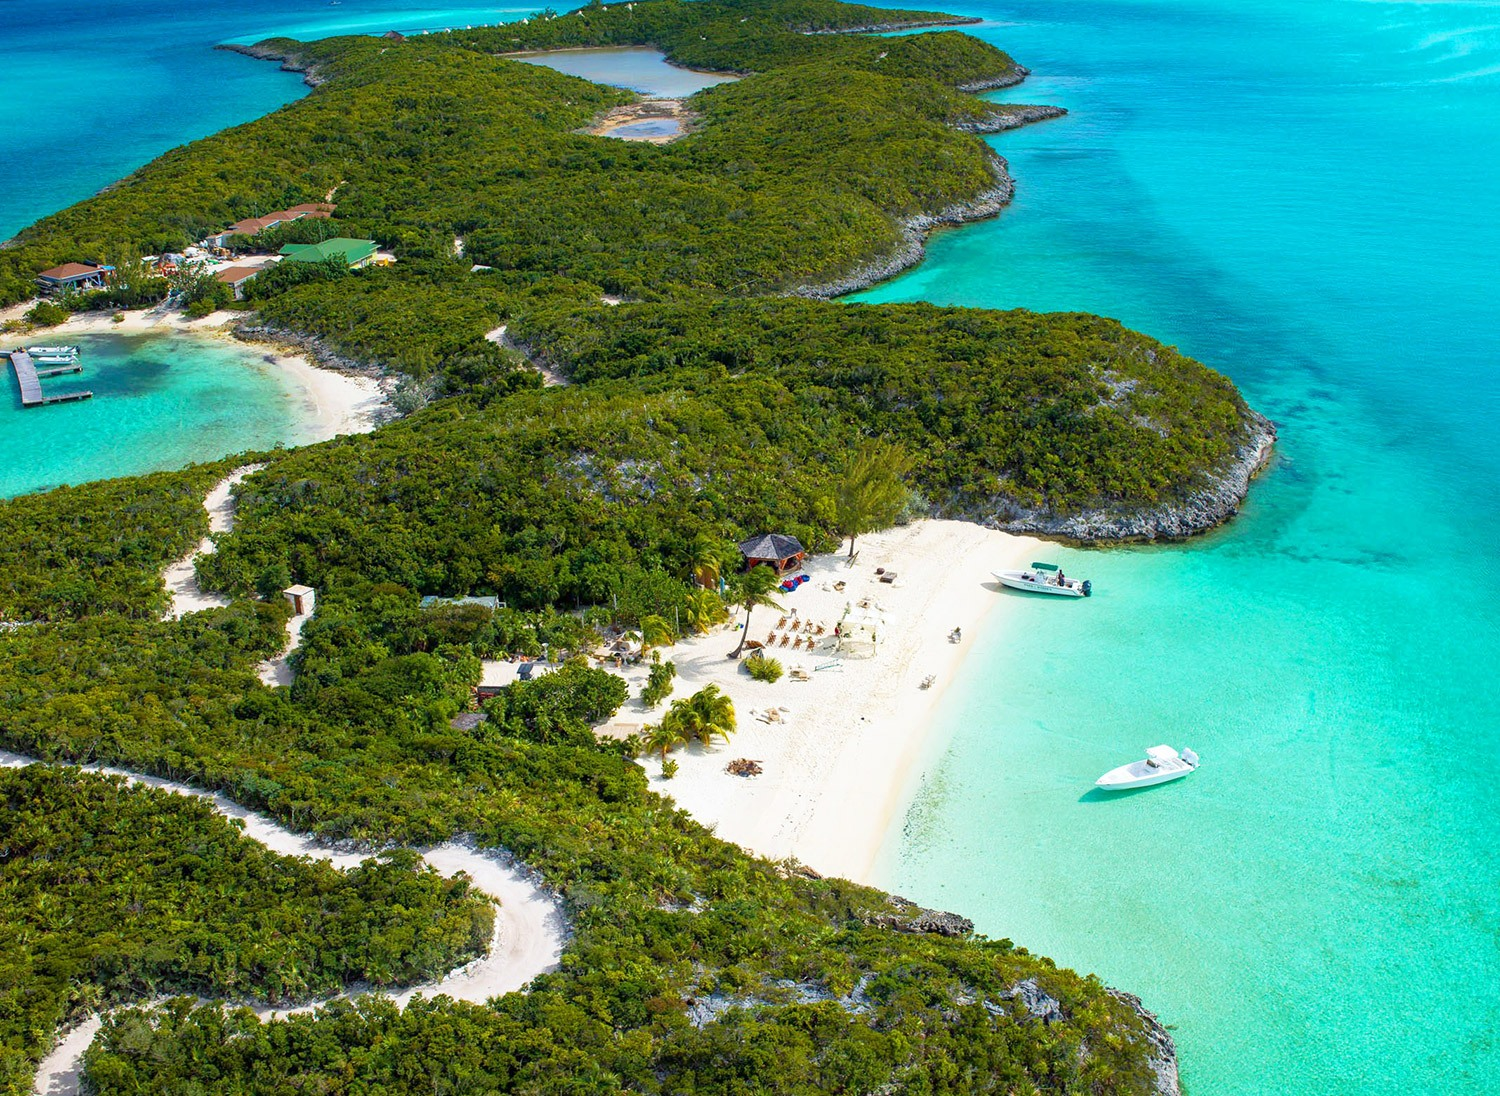 private island 57914a44 6faa 446e a44d f7db83271152 10 Celebrities Who Have Their Own Private Islands